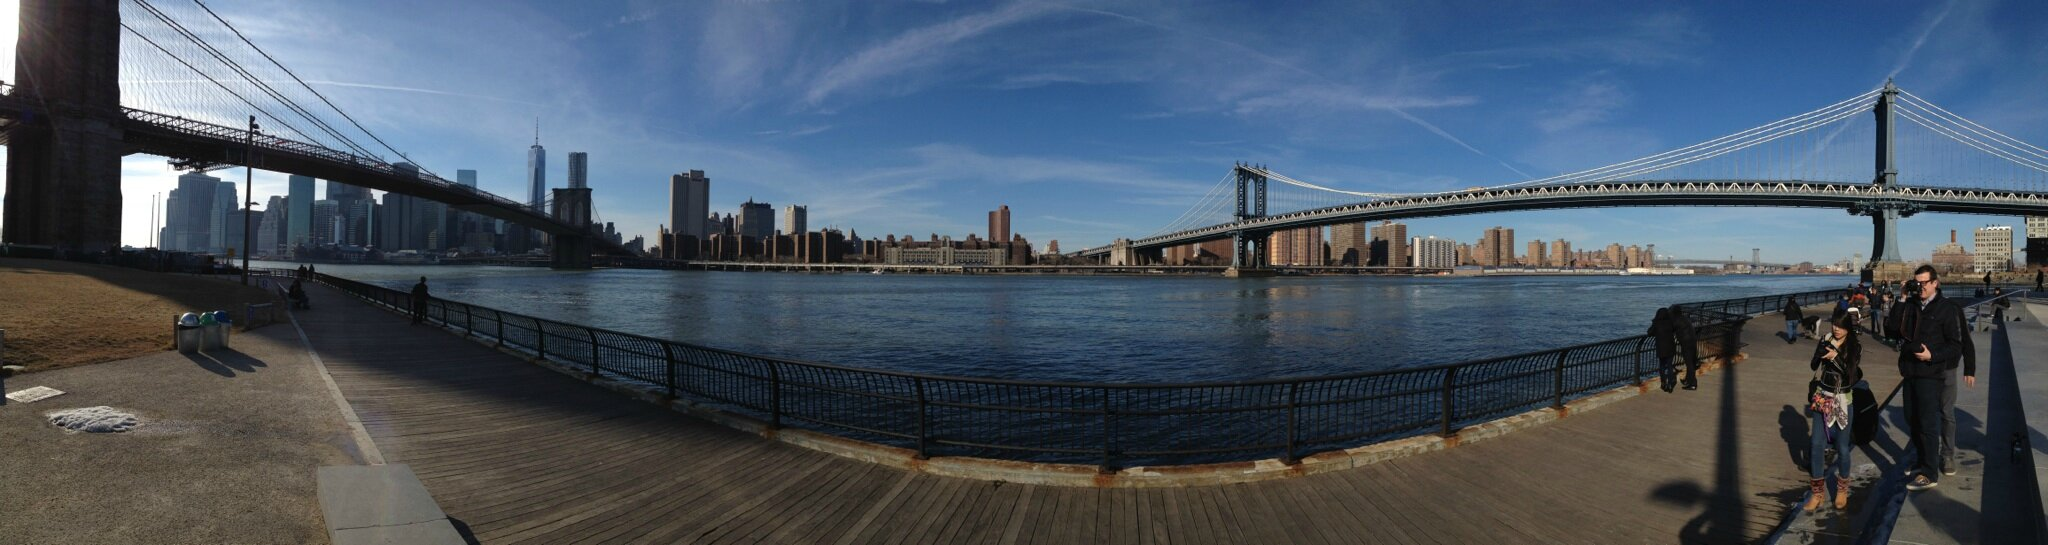 Le pont de BROOKLYN.......New York. USA